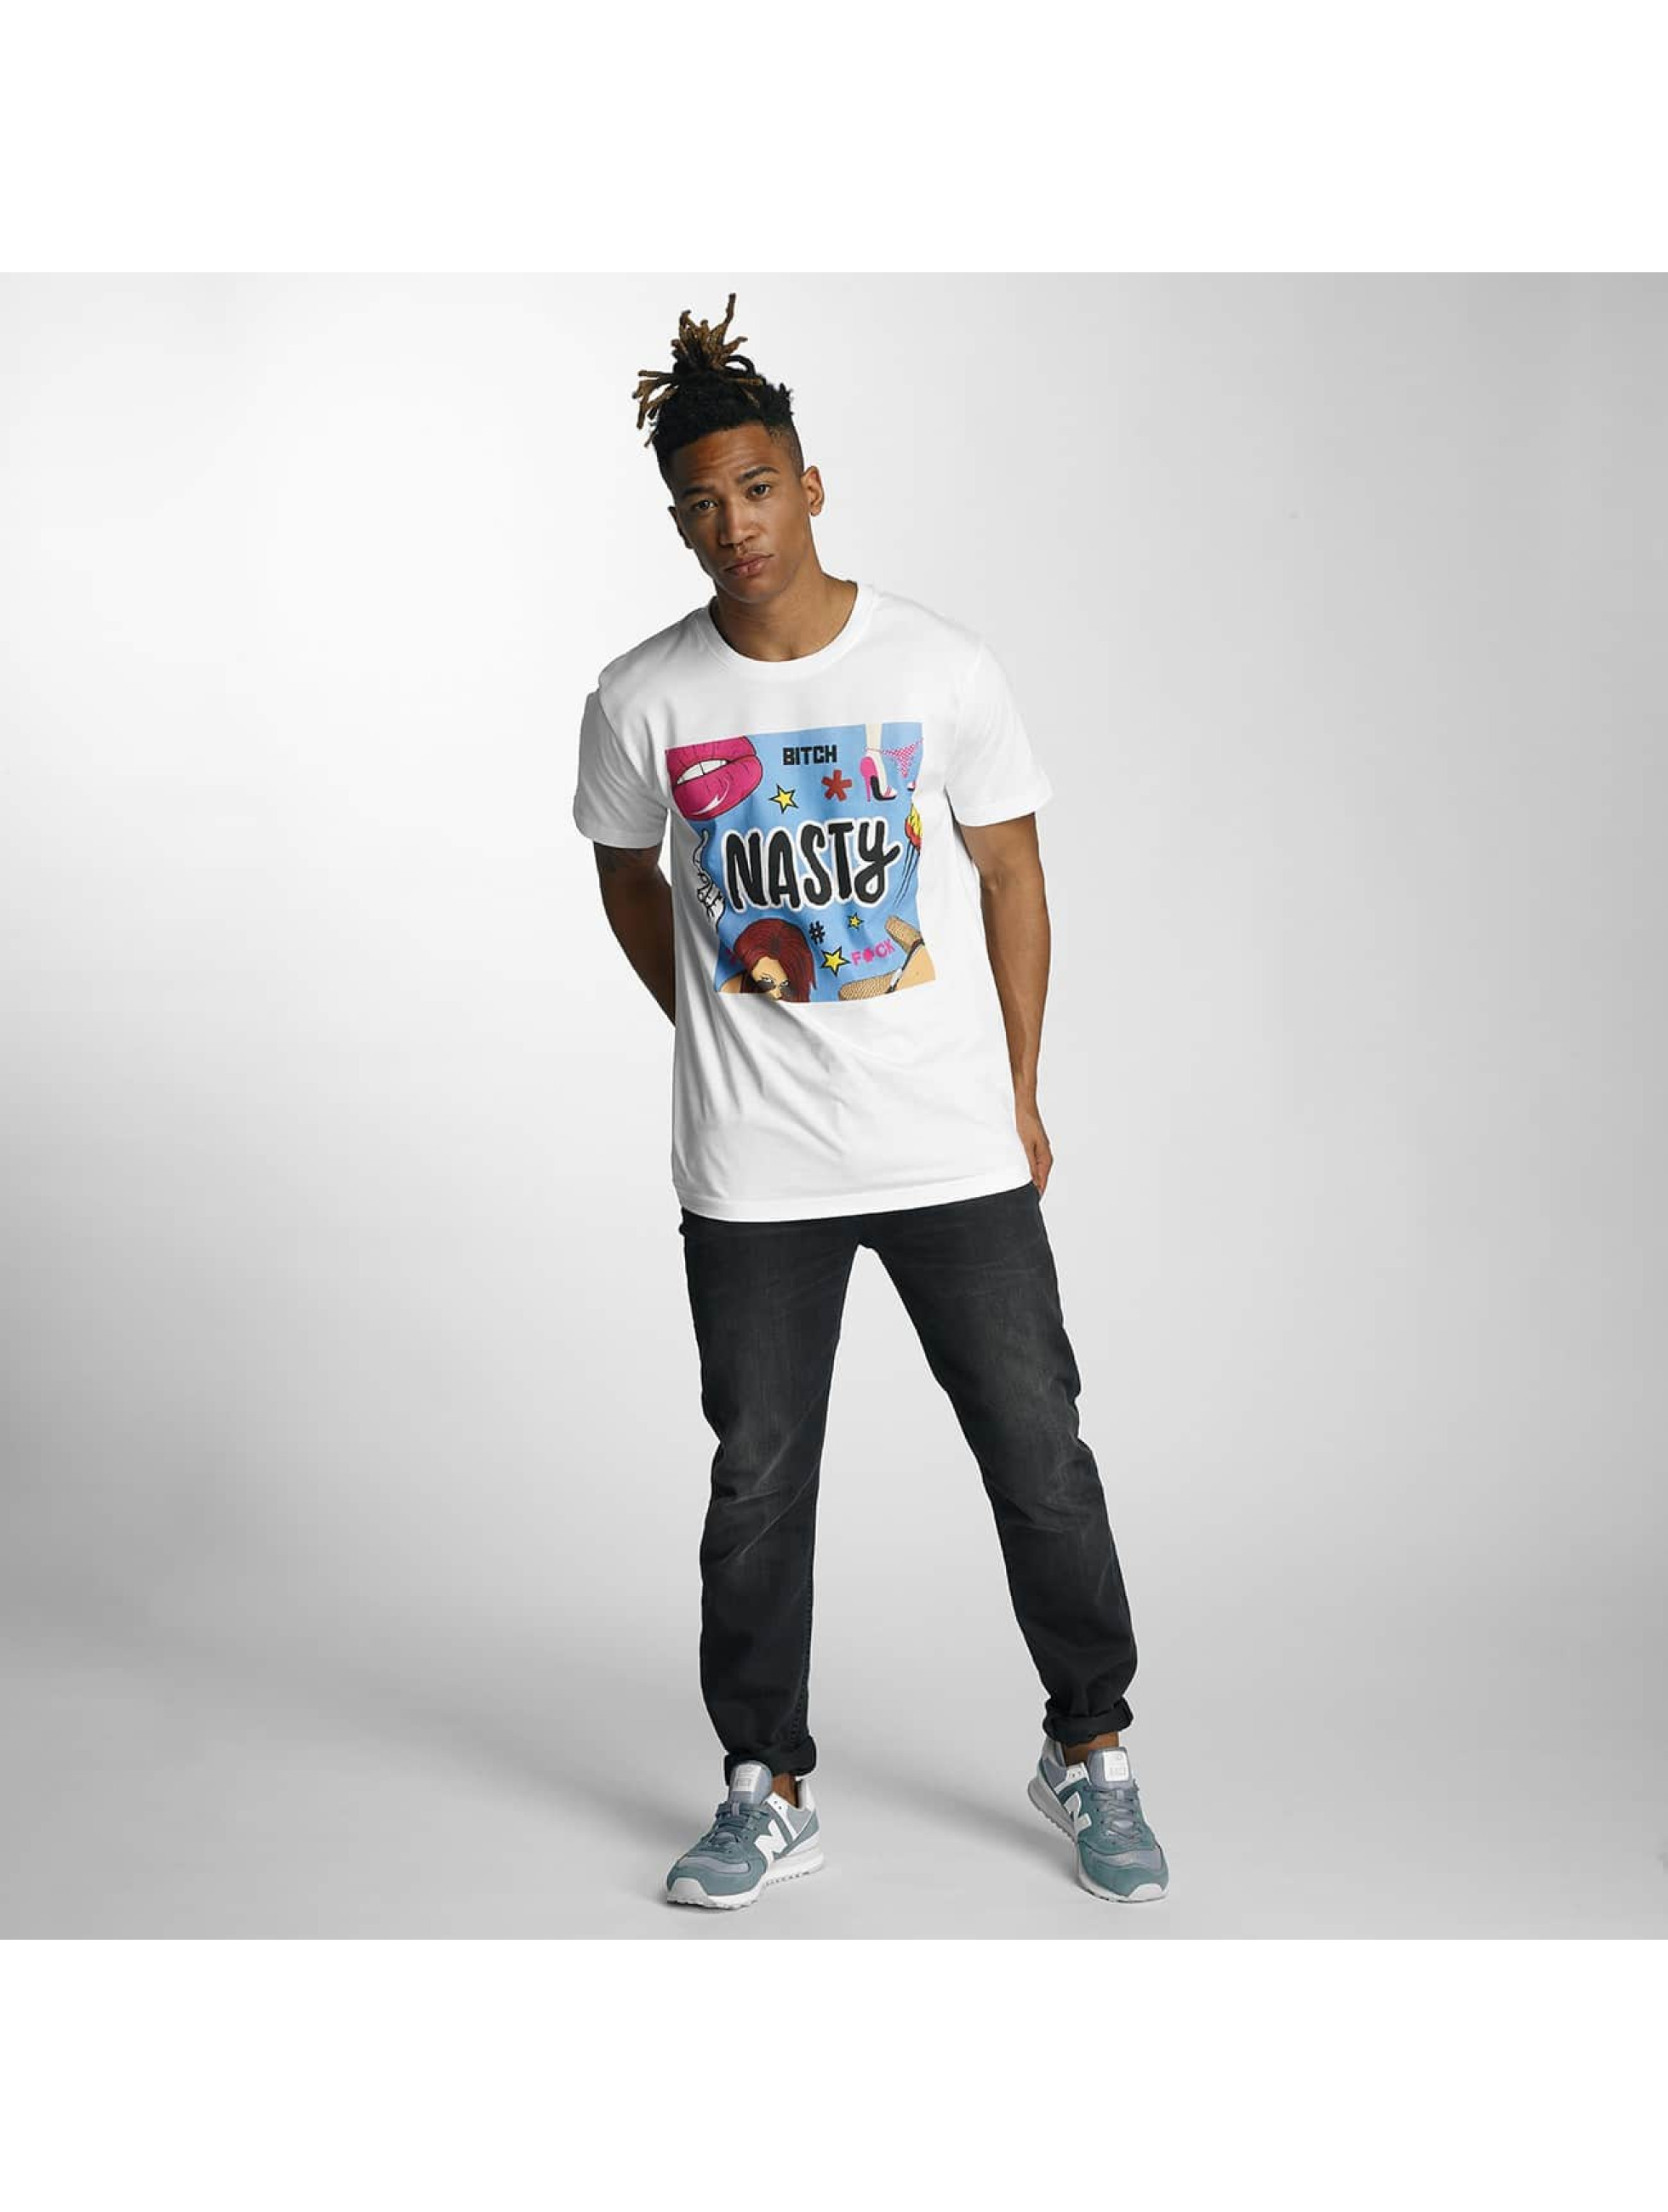 Mister Tee t-shirt Nasty wit